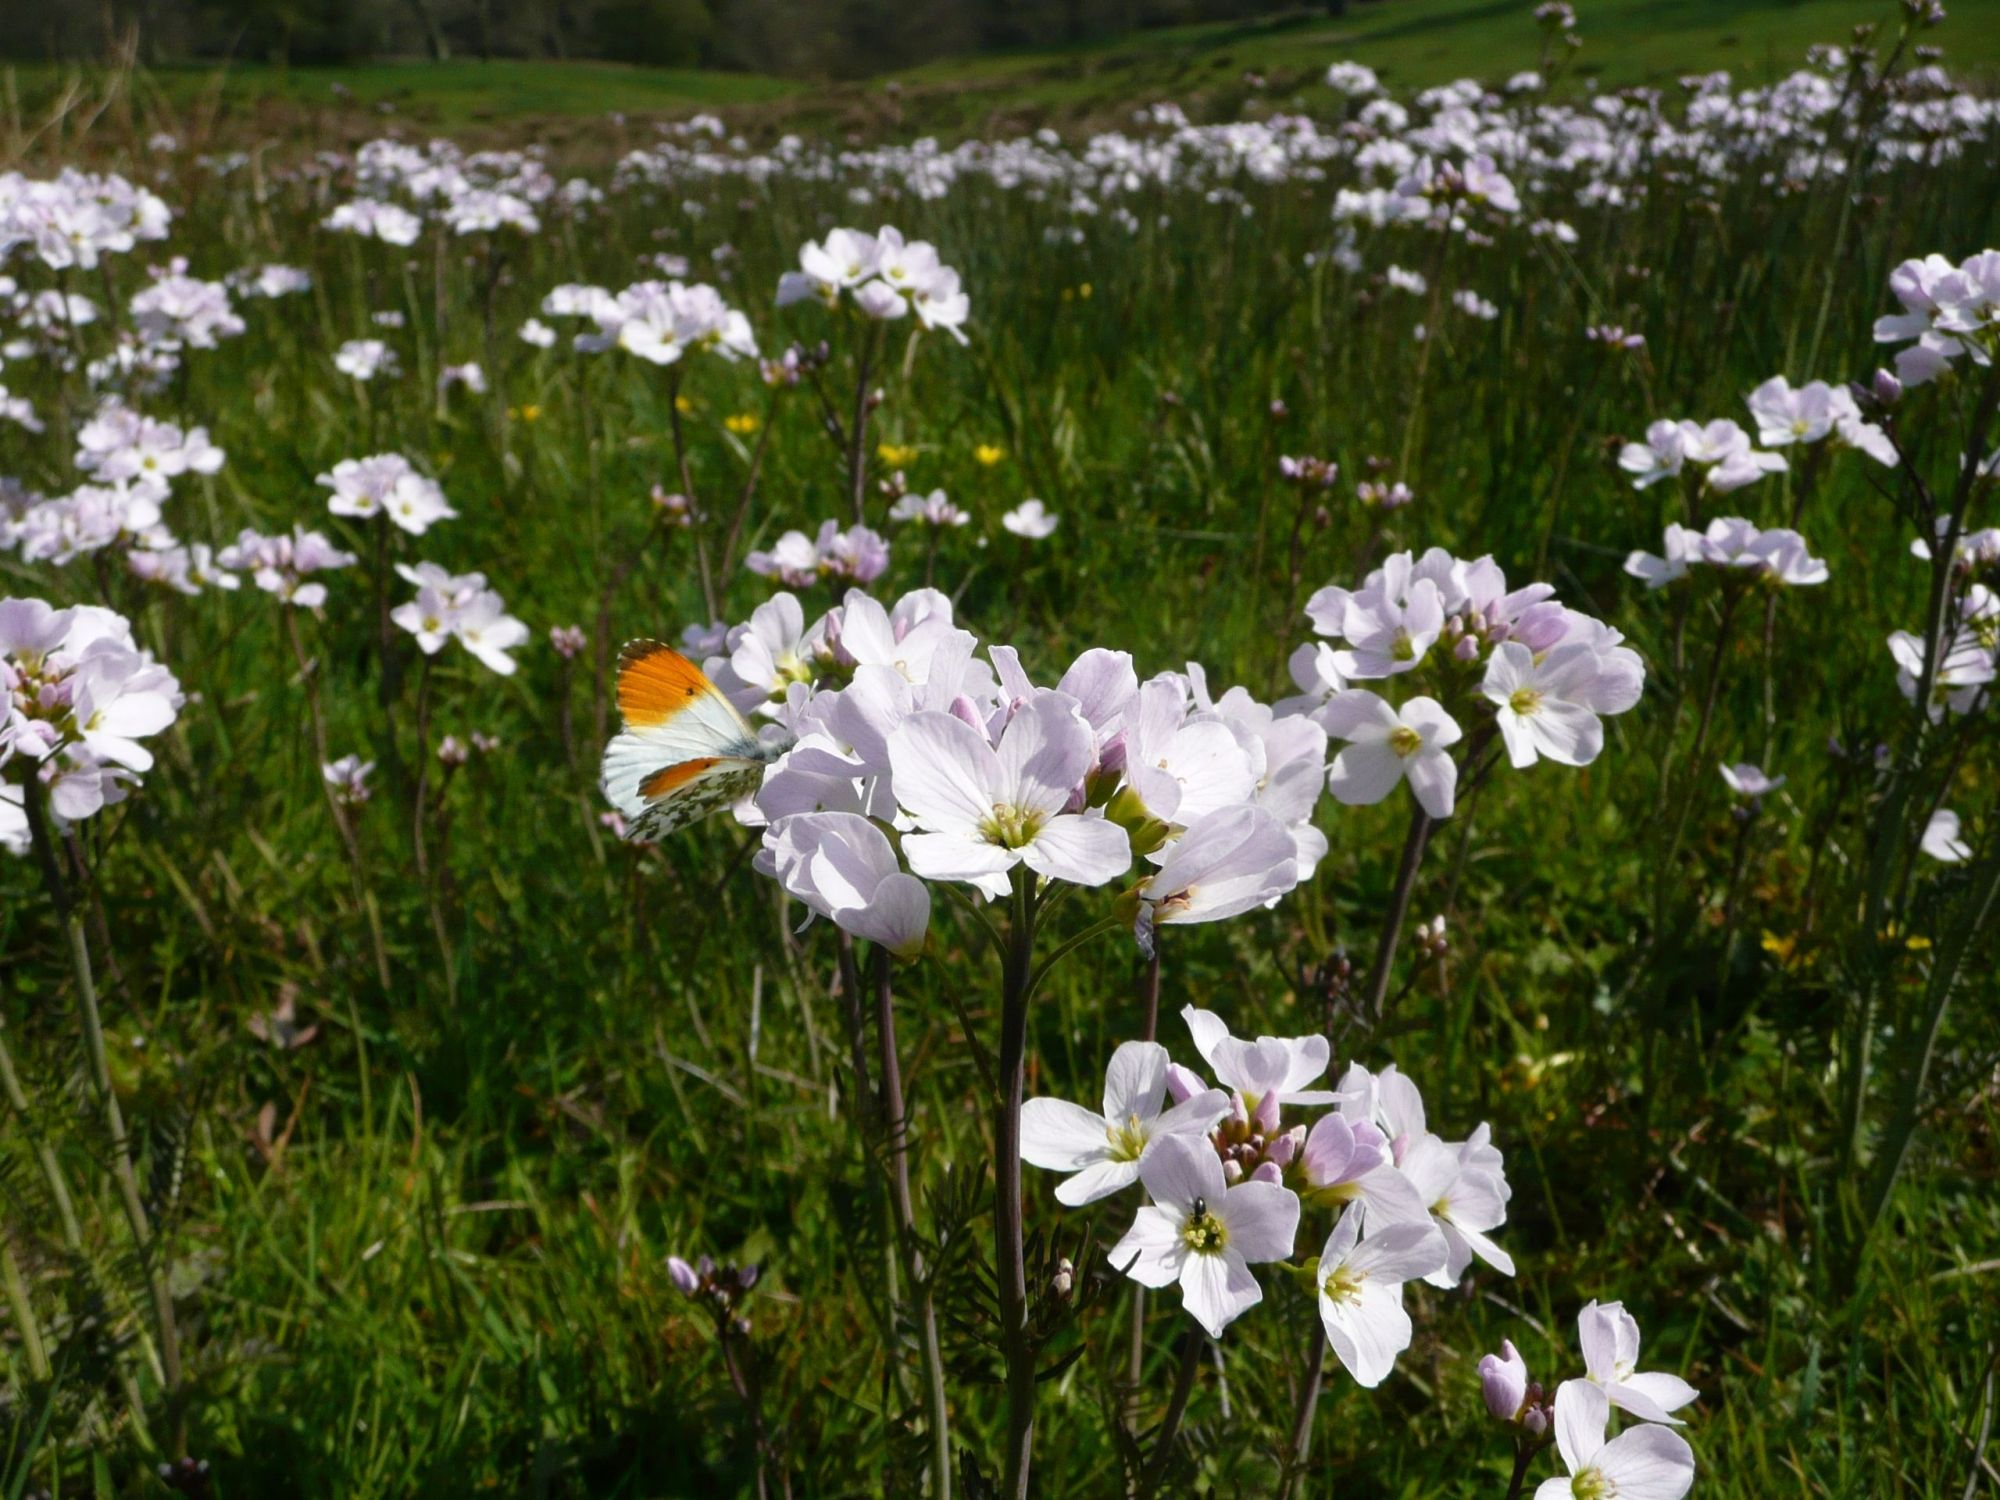 £3m funding boost for Plantlife meadow project